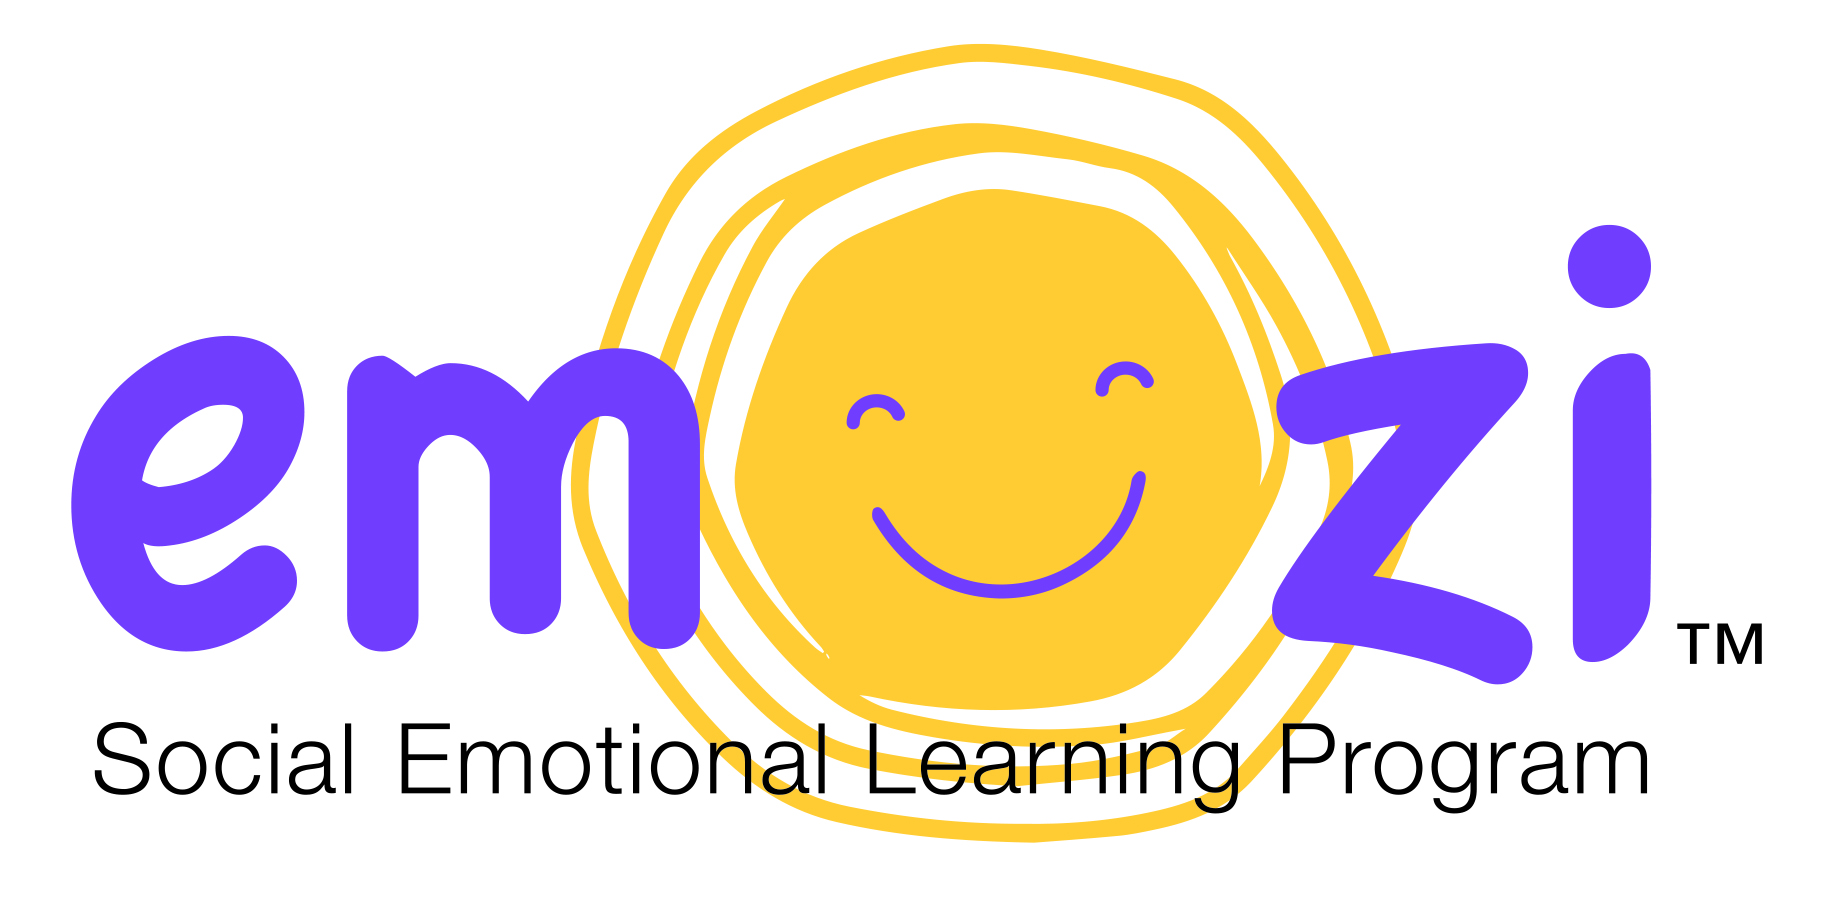 Emozi logo with tagline